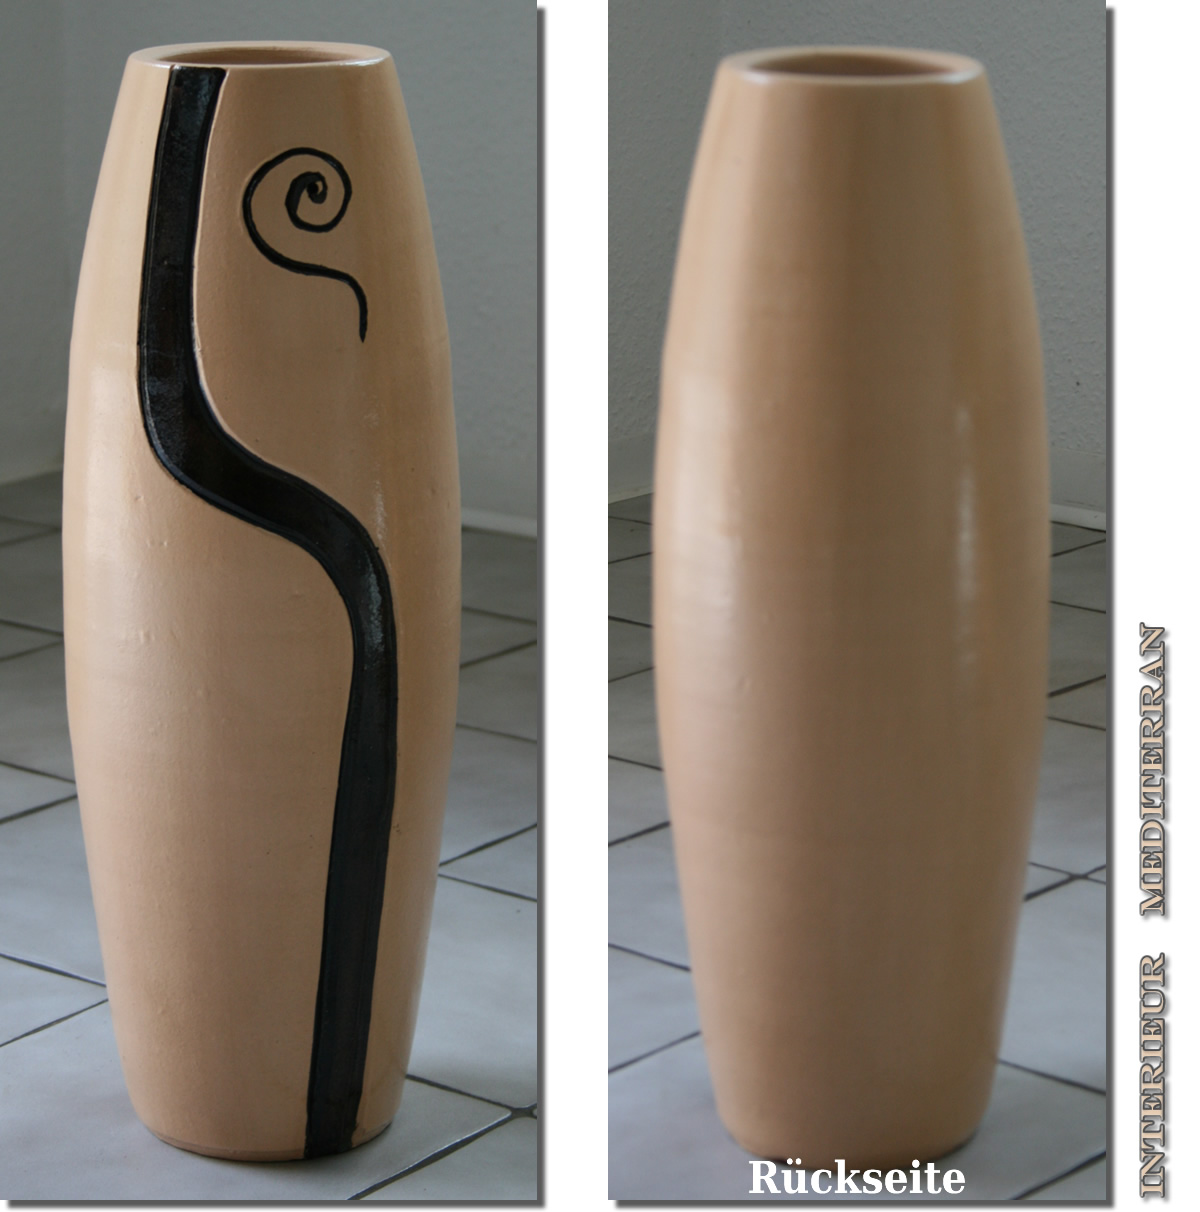 bodenvase keramik 60 cm vase amphore dekovase moderne deko beige aus portugal ebay. Black Bedroom Furniture Sets. Home Design Ideas